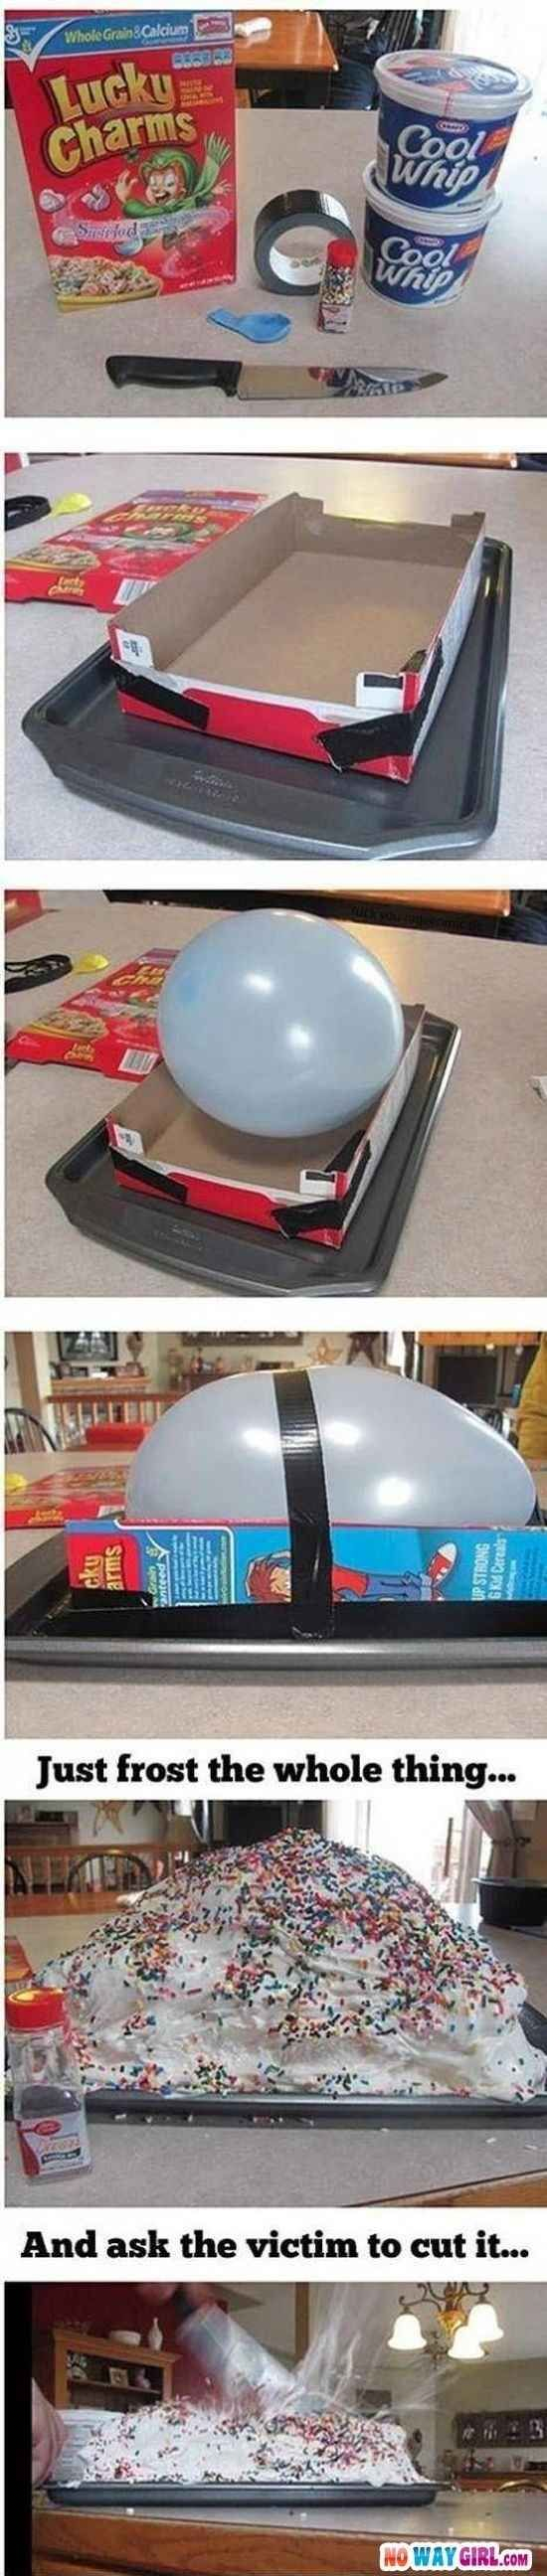 Lastly, if you're feeling really ambitious you can try this outrageous prank.   31 Awesome April Fools' Day Pranks Your Kids Will Totally Fall For